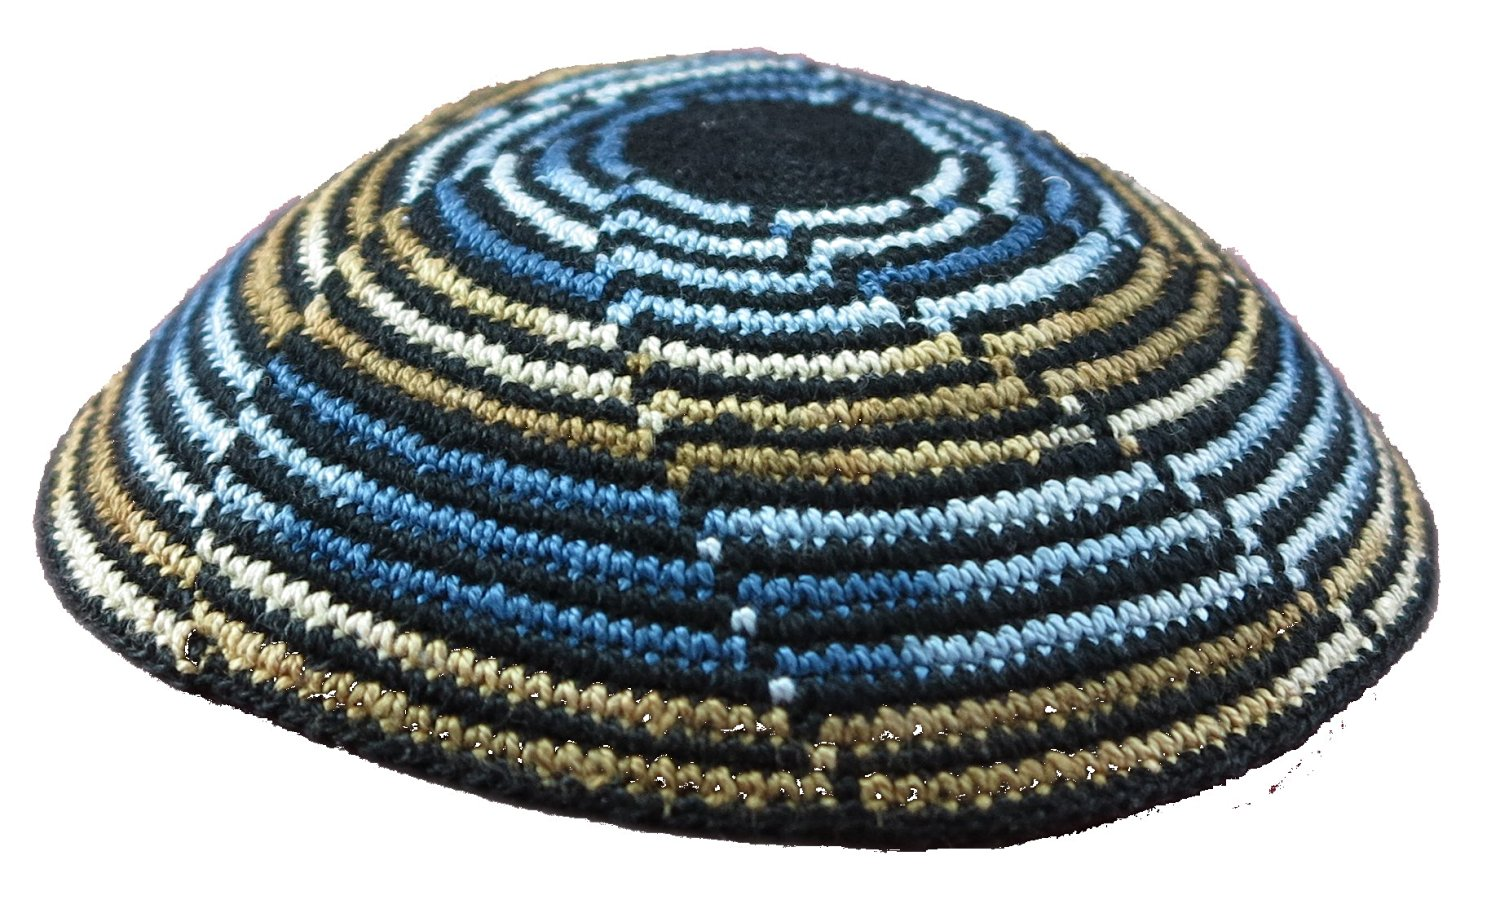 Buy Dmc Hand Knitted Yarmulke Kippah Hat 15Cm in Cheap Price on ...